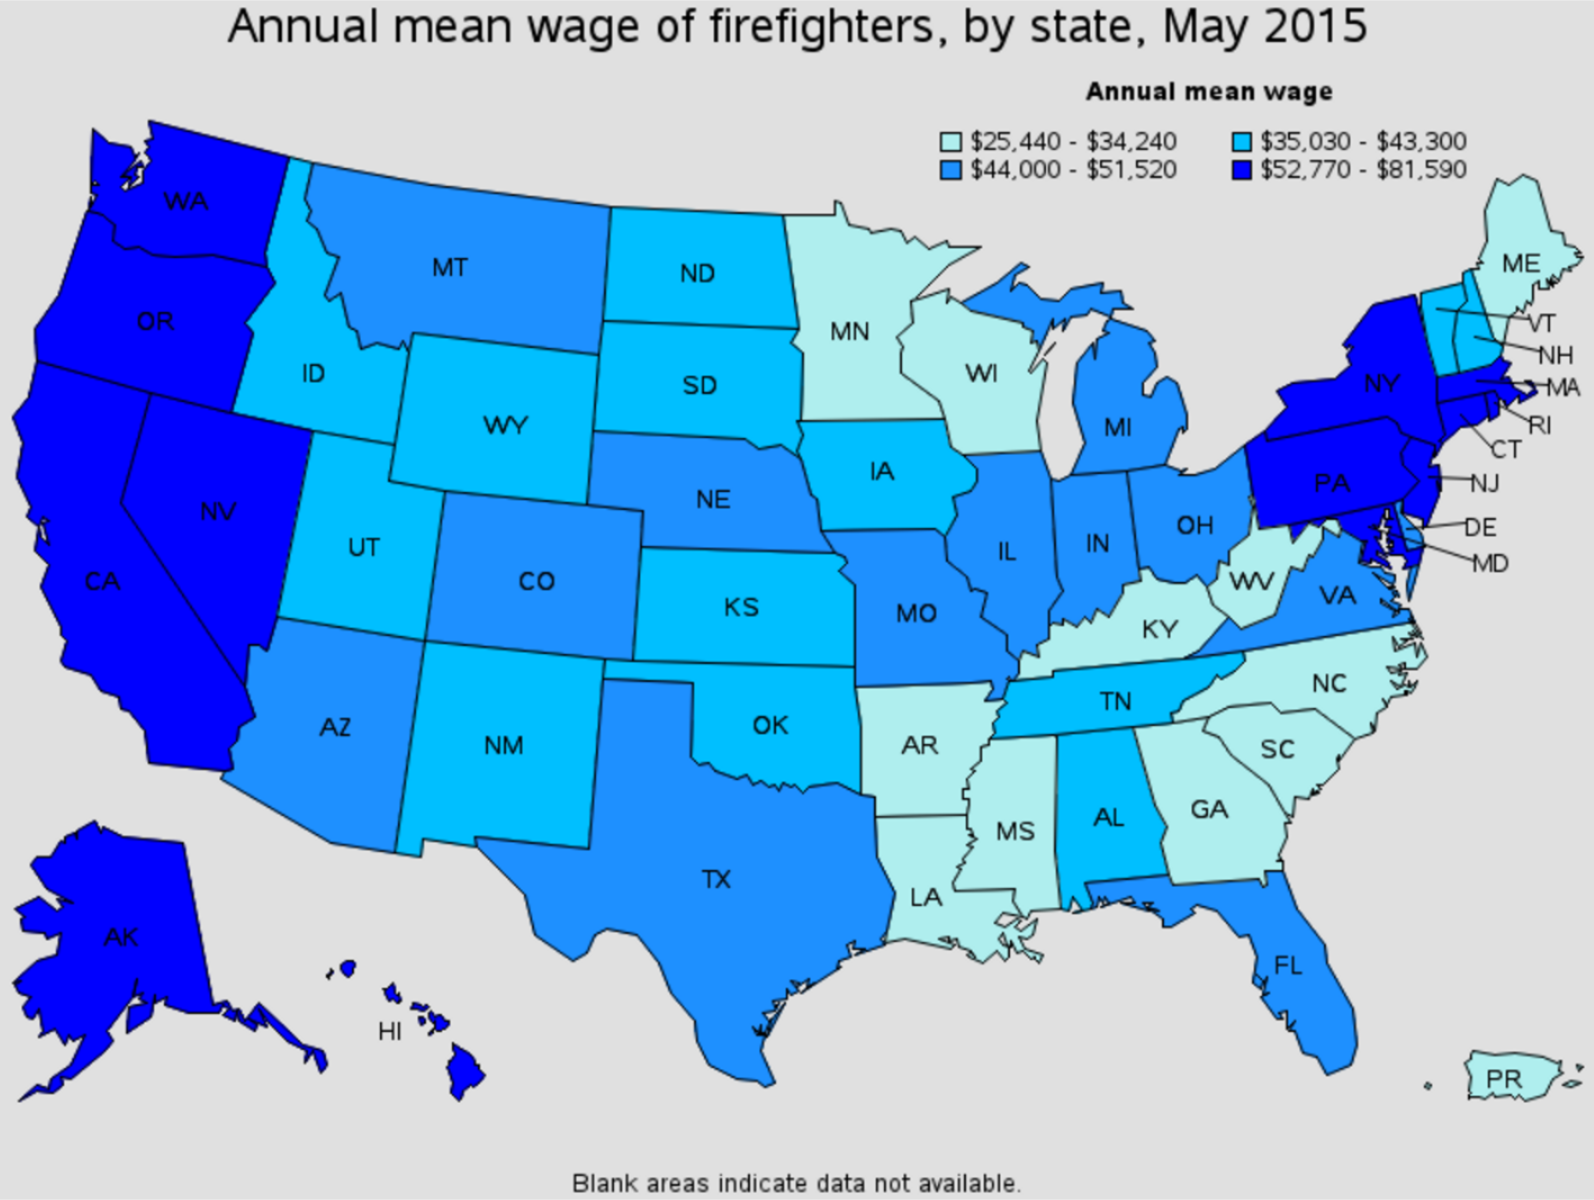 firefighter average salary by state Westminster Massachusetts